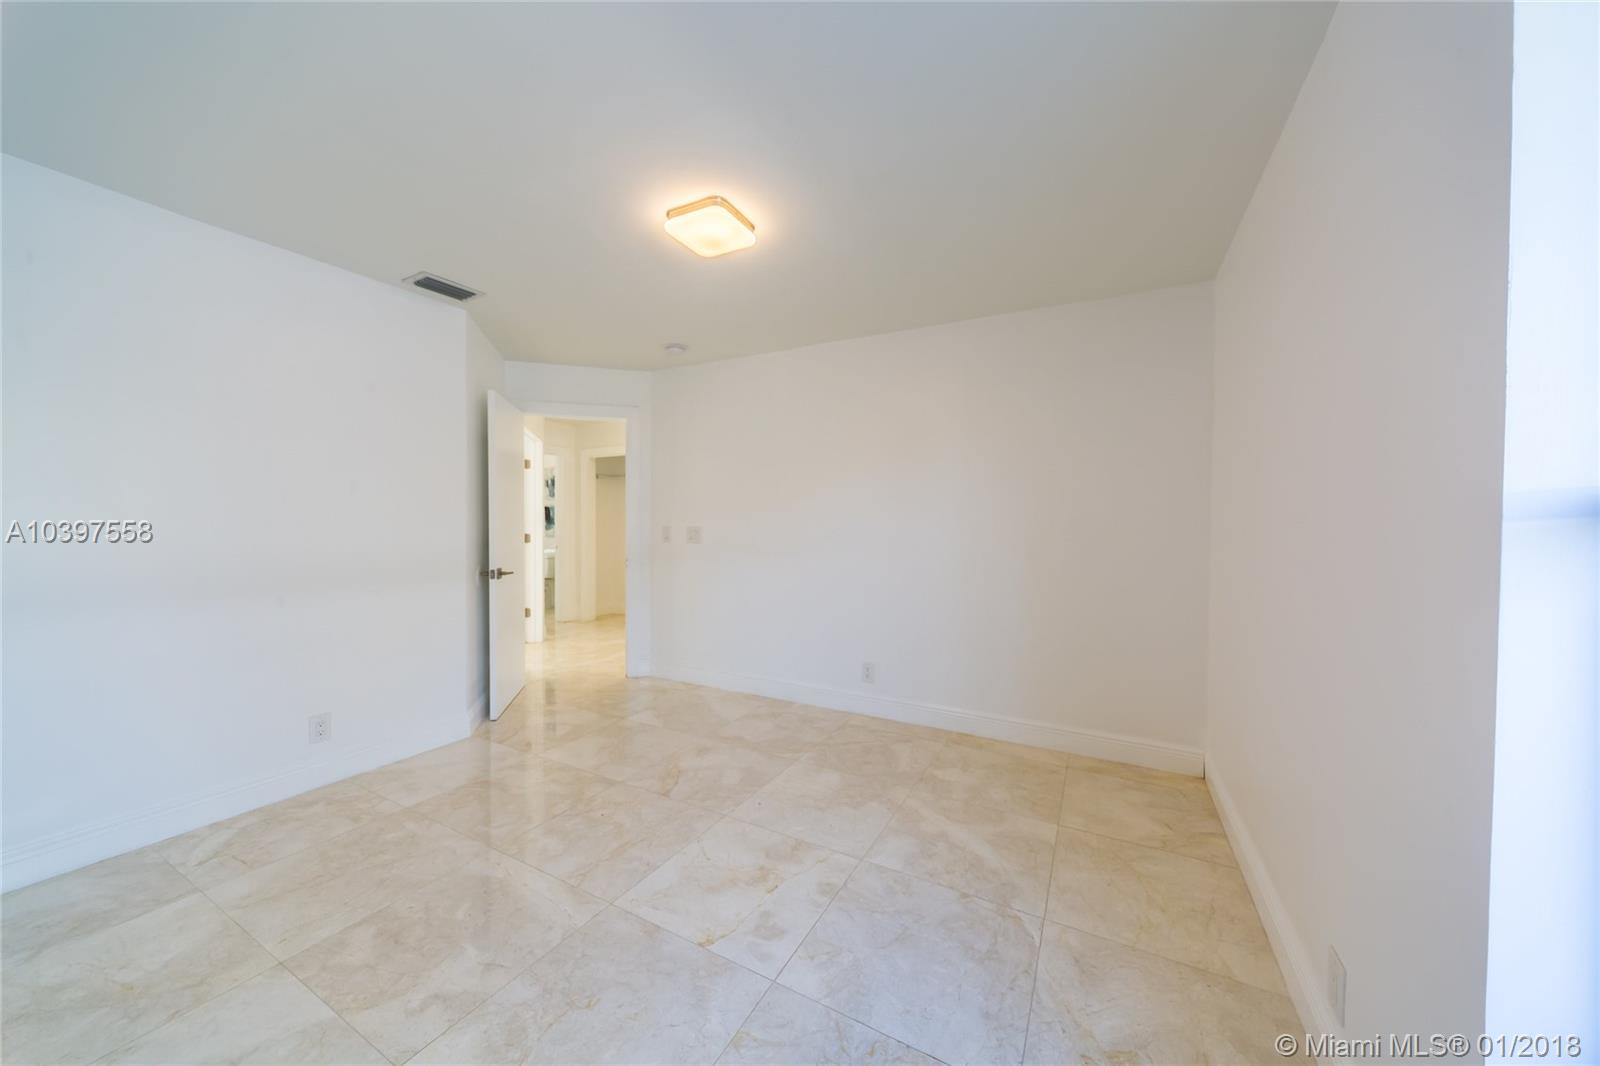 7798 Nw 55th Pl, Coral Springs FL, 33067